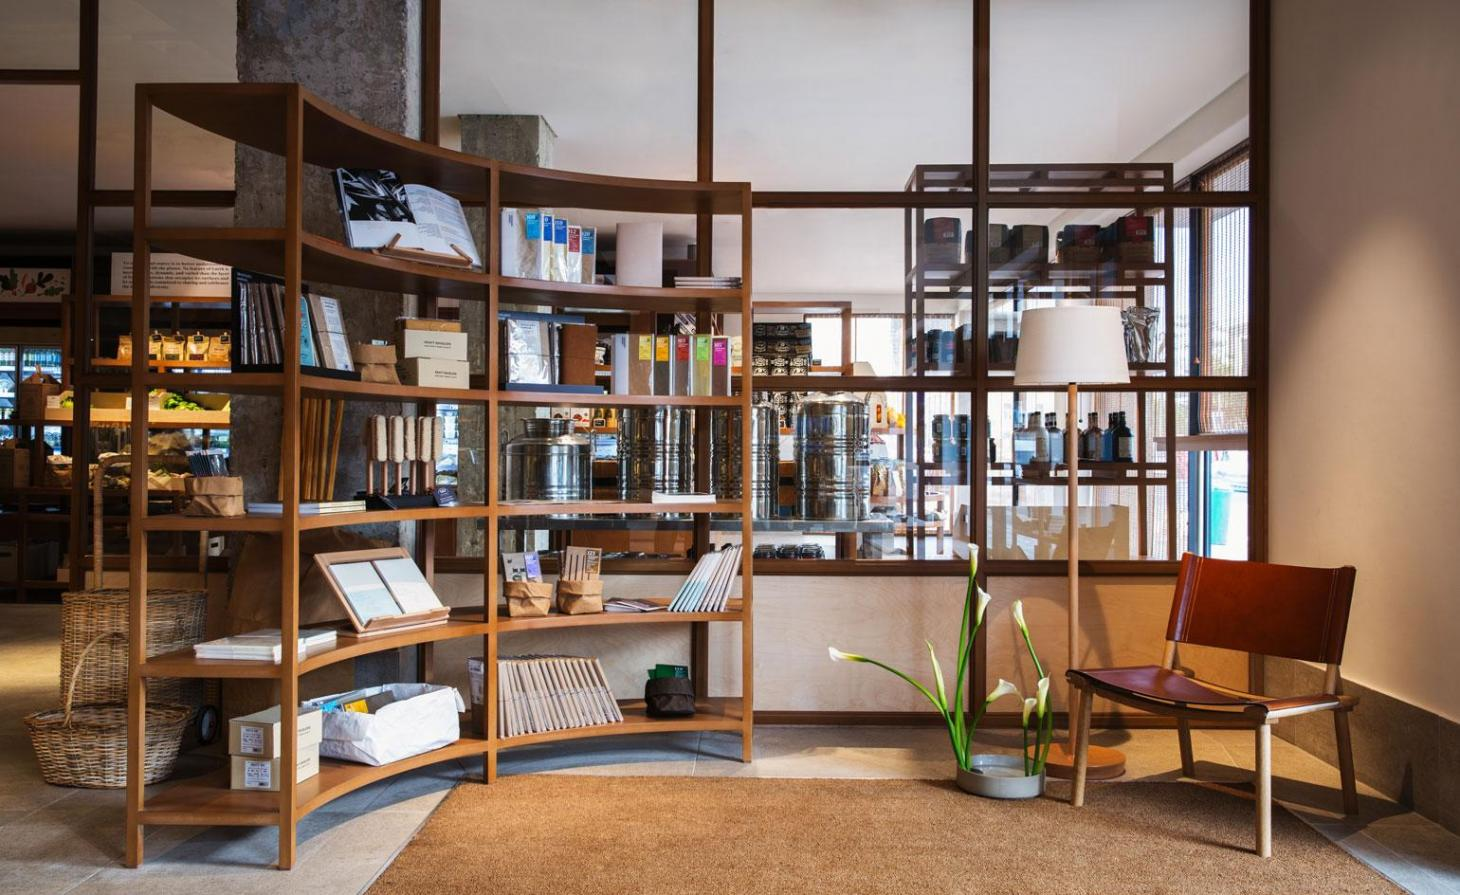 Inside Sans department store, designed by Master Studio in Cape Town